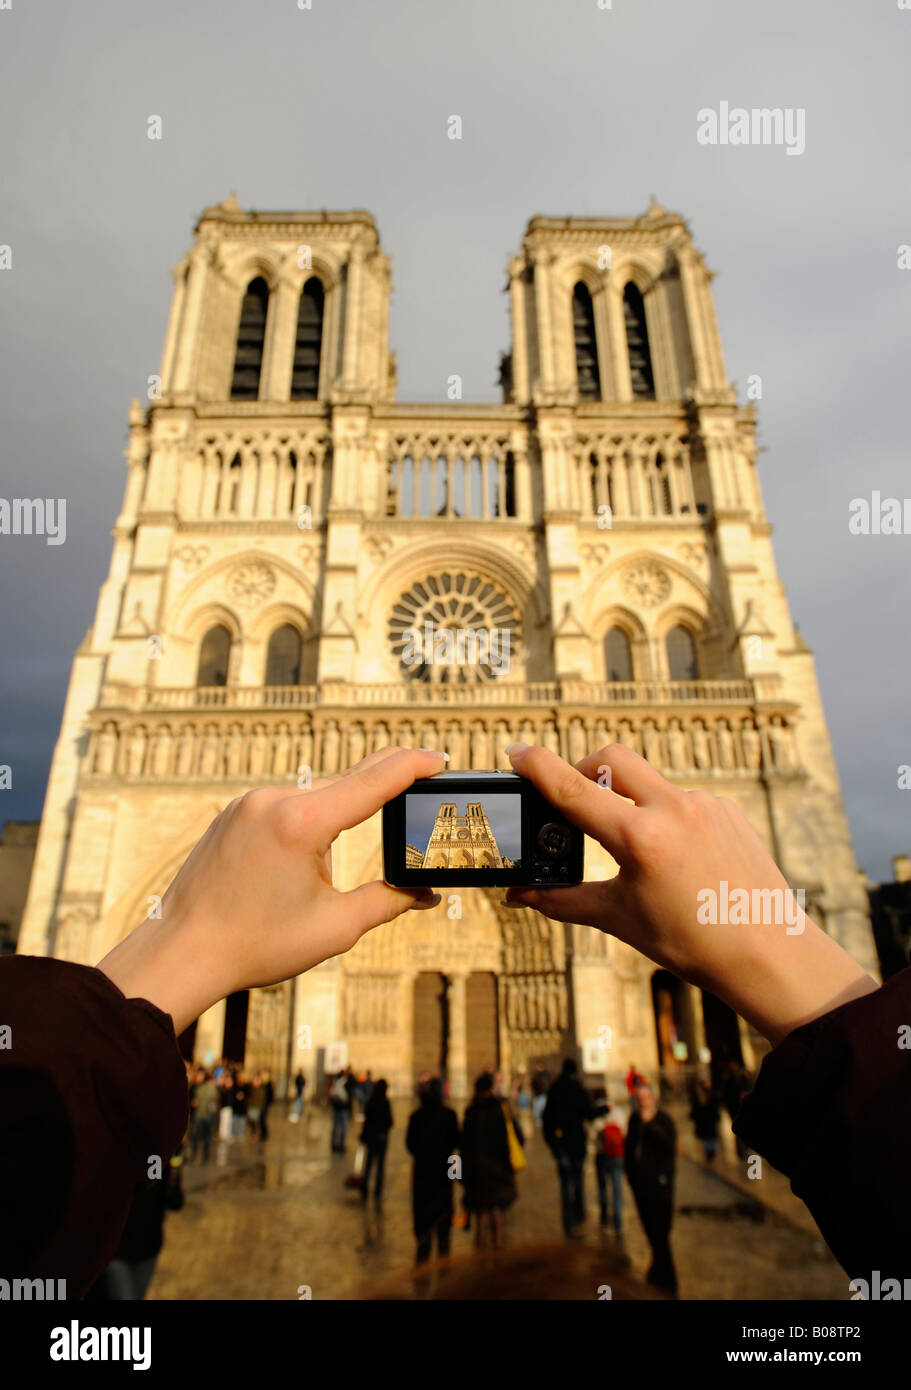 french famous buildings landmarks hand stock photos french famous